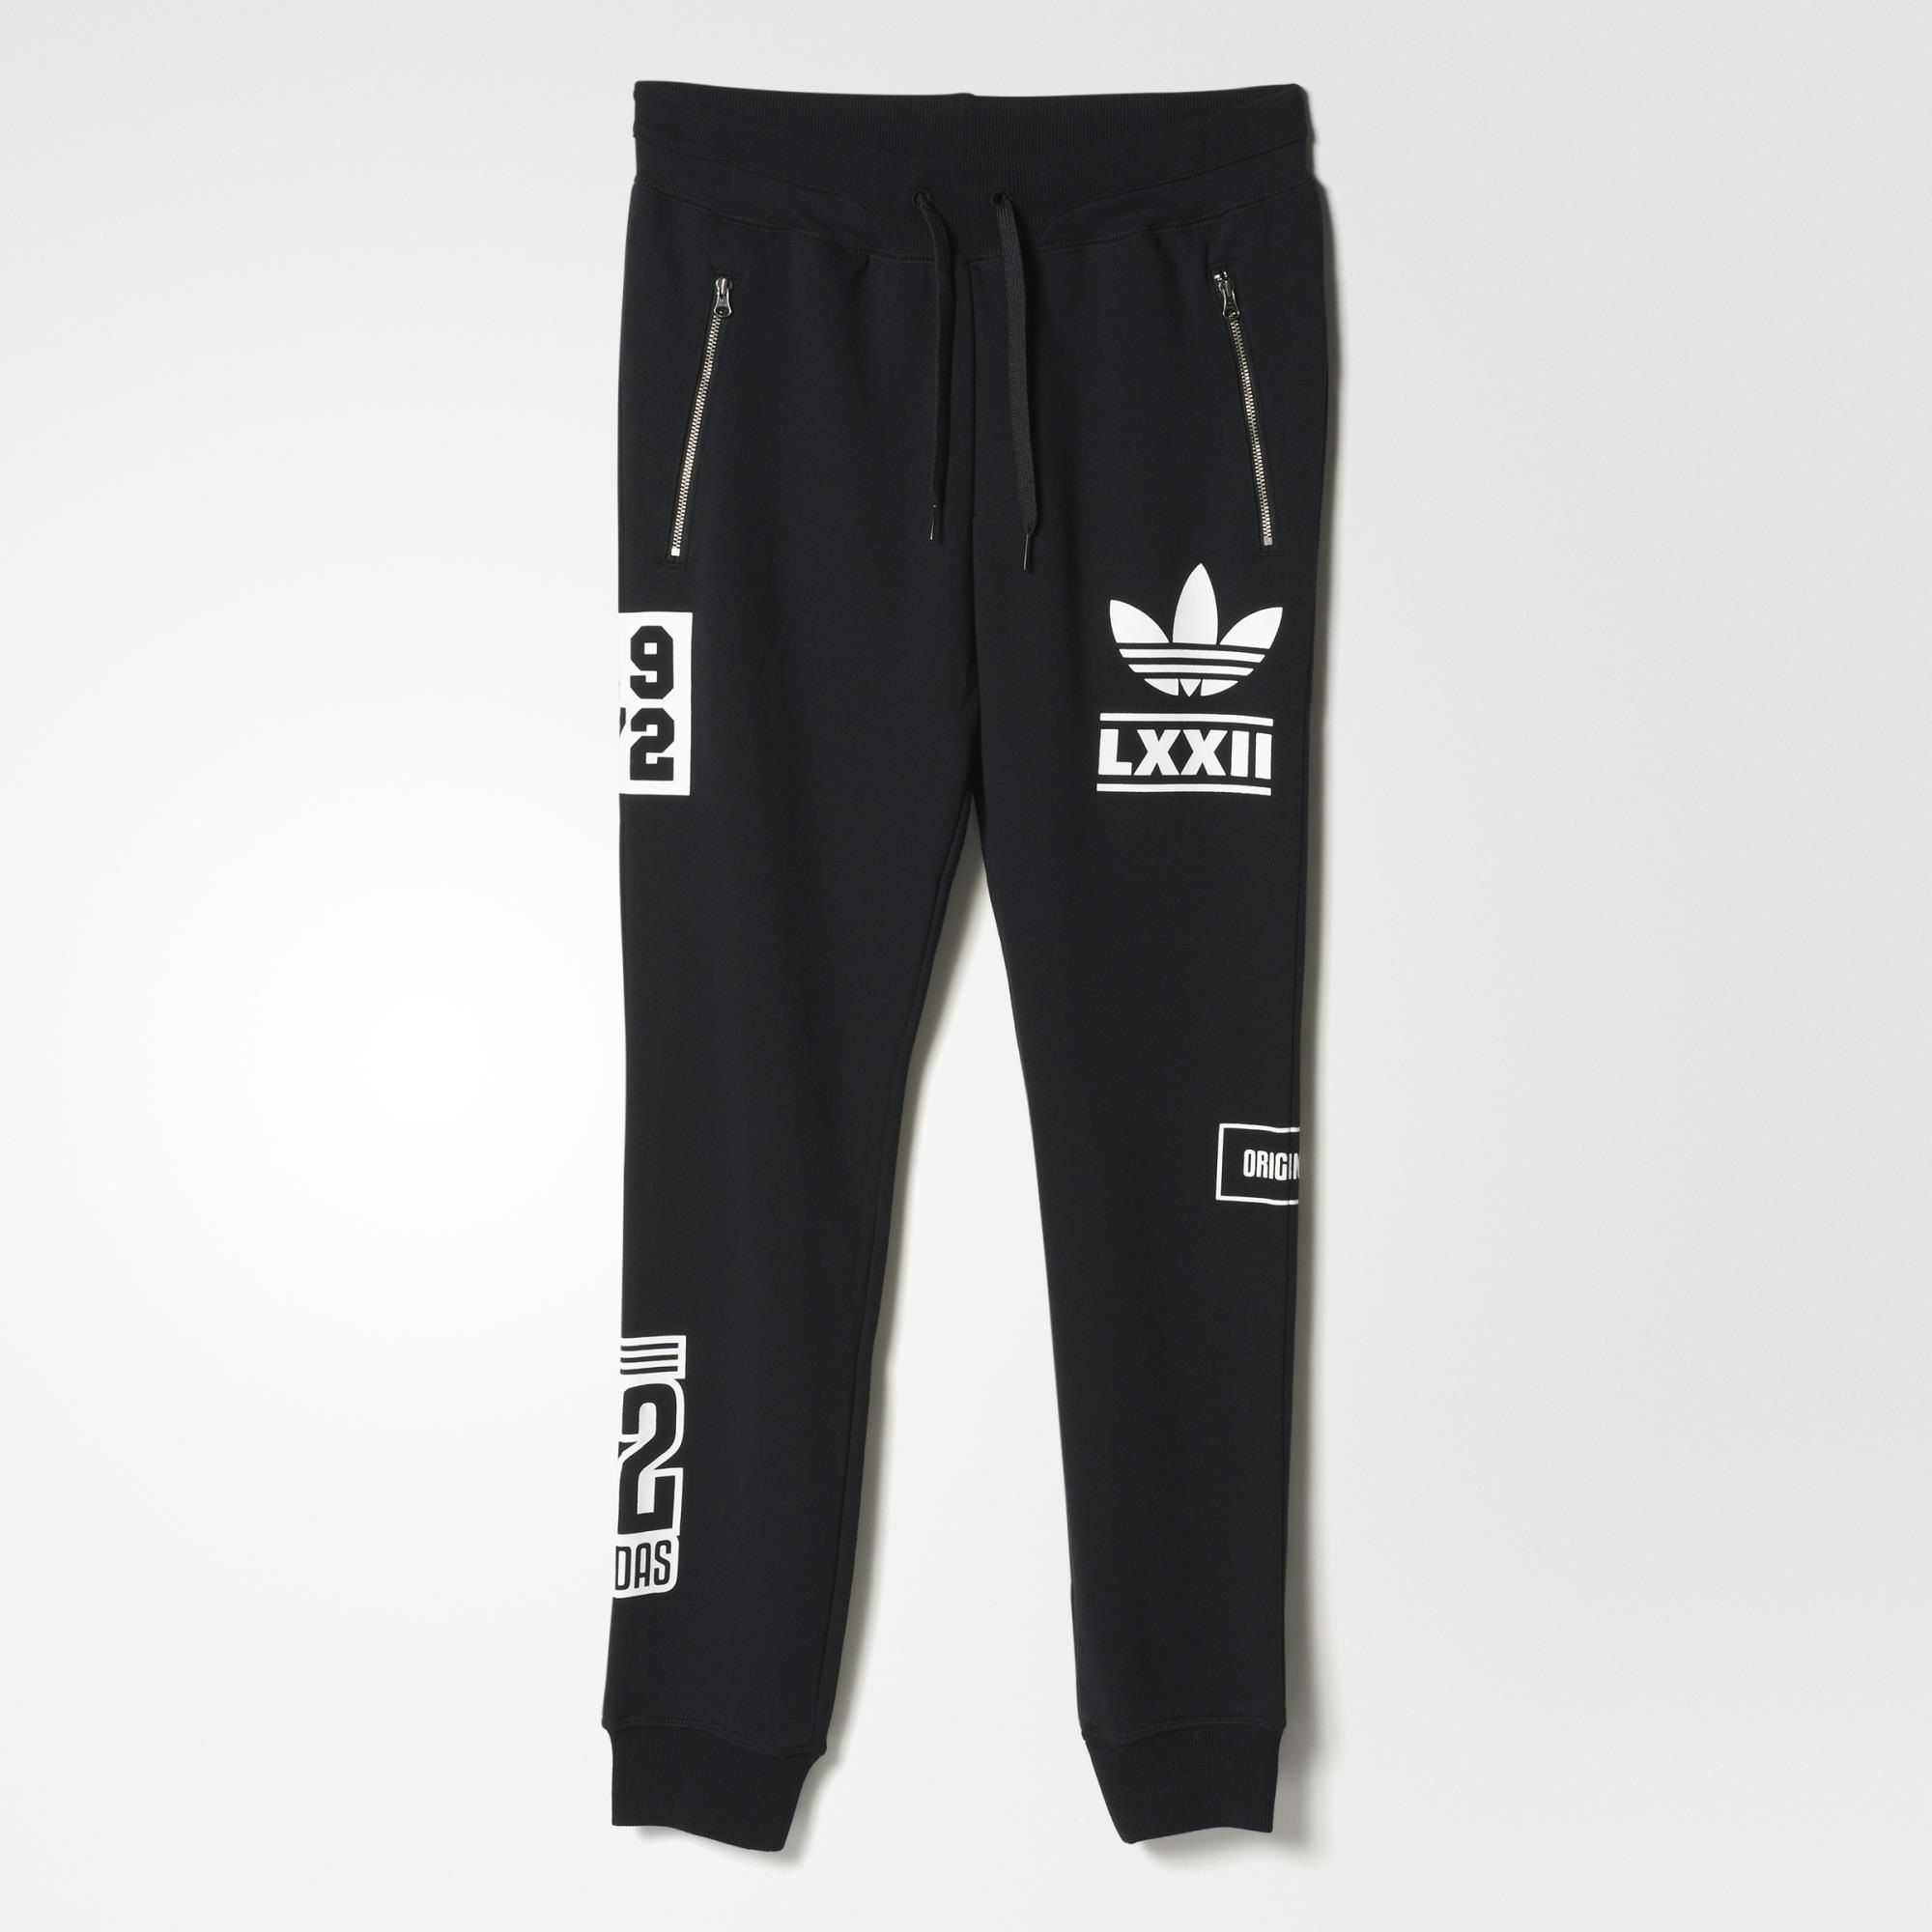 9f88a5b5436b0 adidas Berlin Slim Fit Track Pants - Black